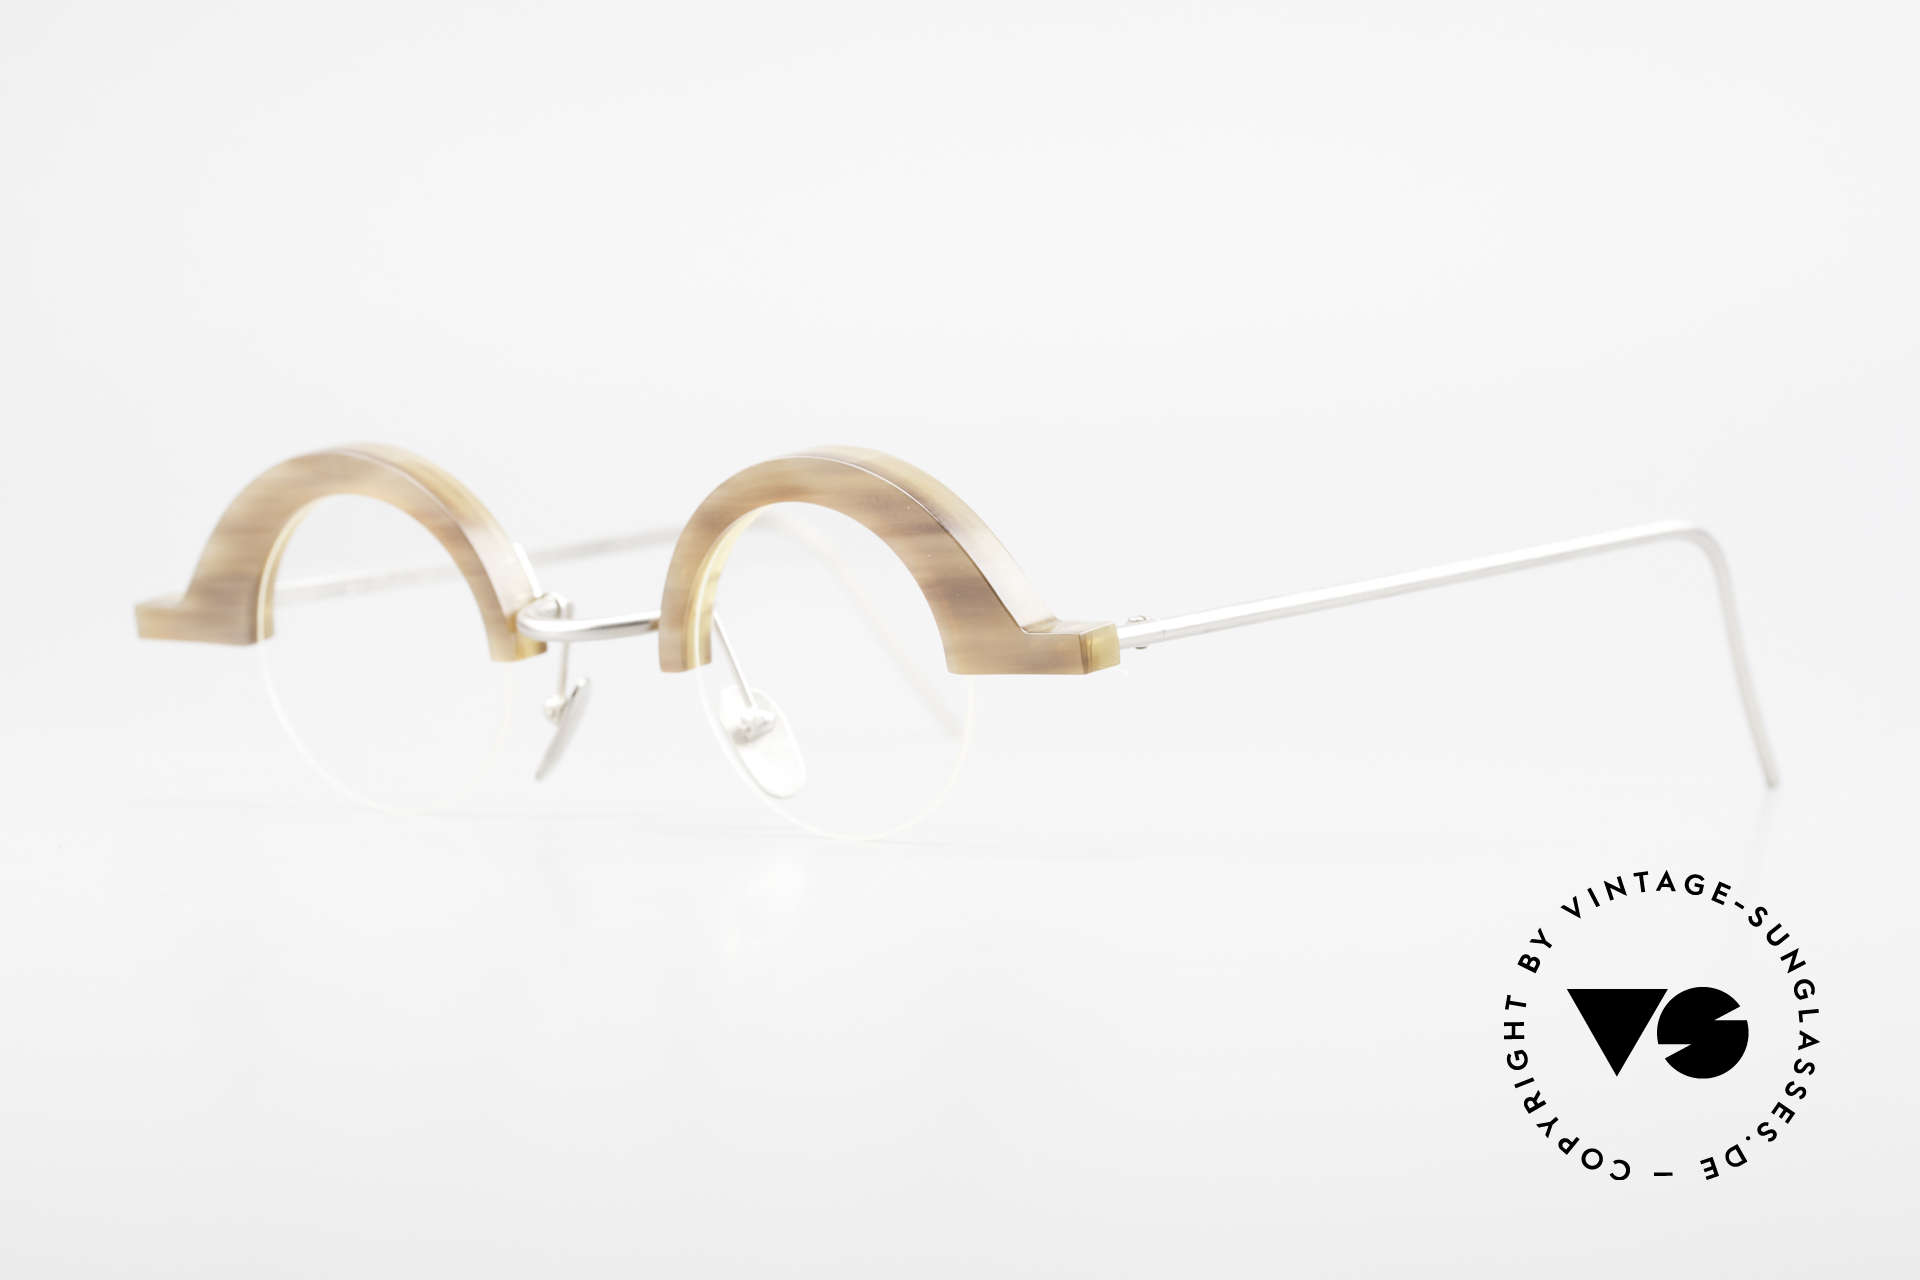 B. Angeletti Baal Redesign Genuine Horn Glasses 1994, true rarity (pure natural material - handmade), vertu!, Made for Men and Women